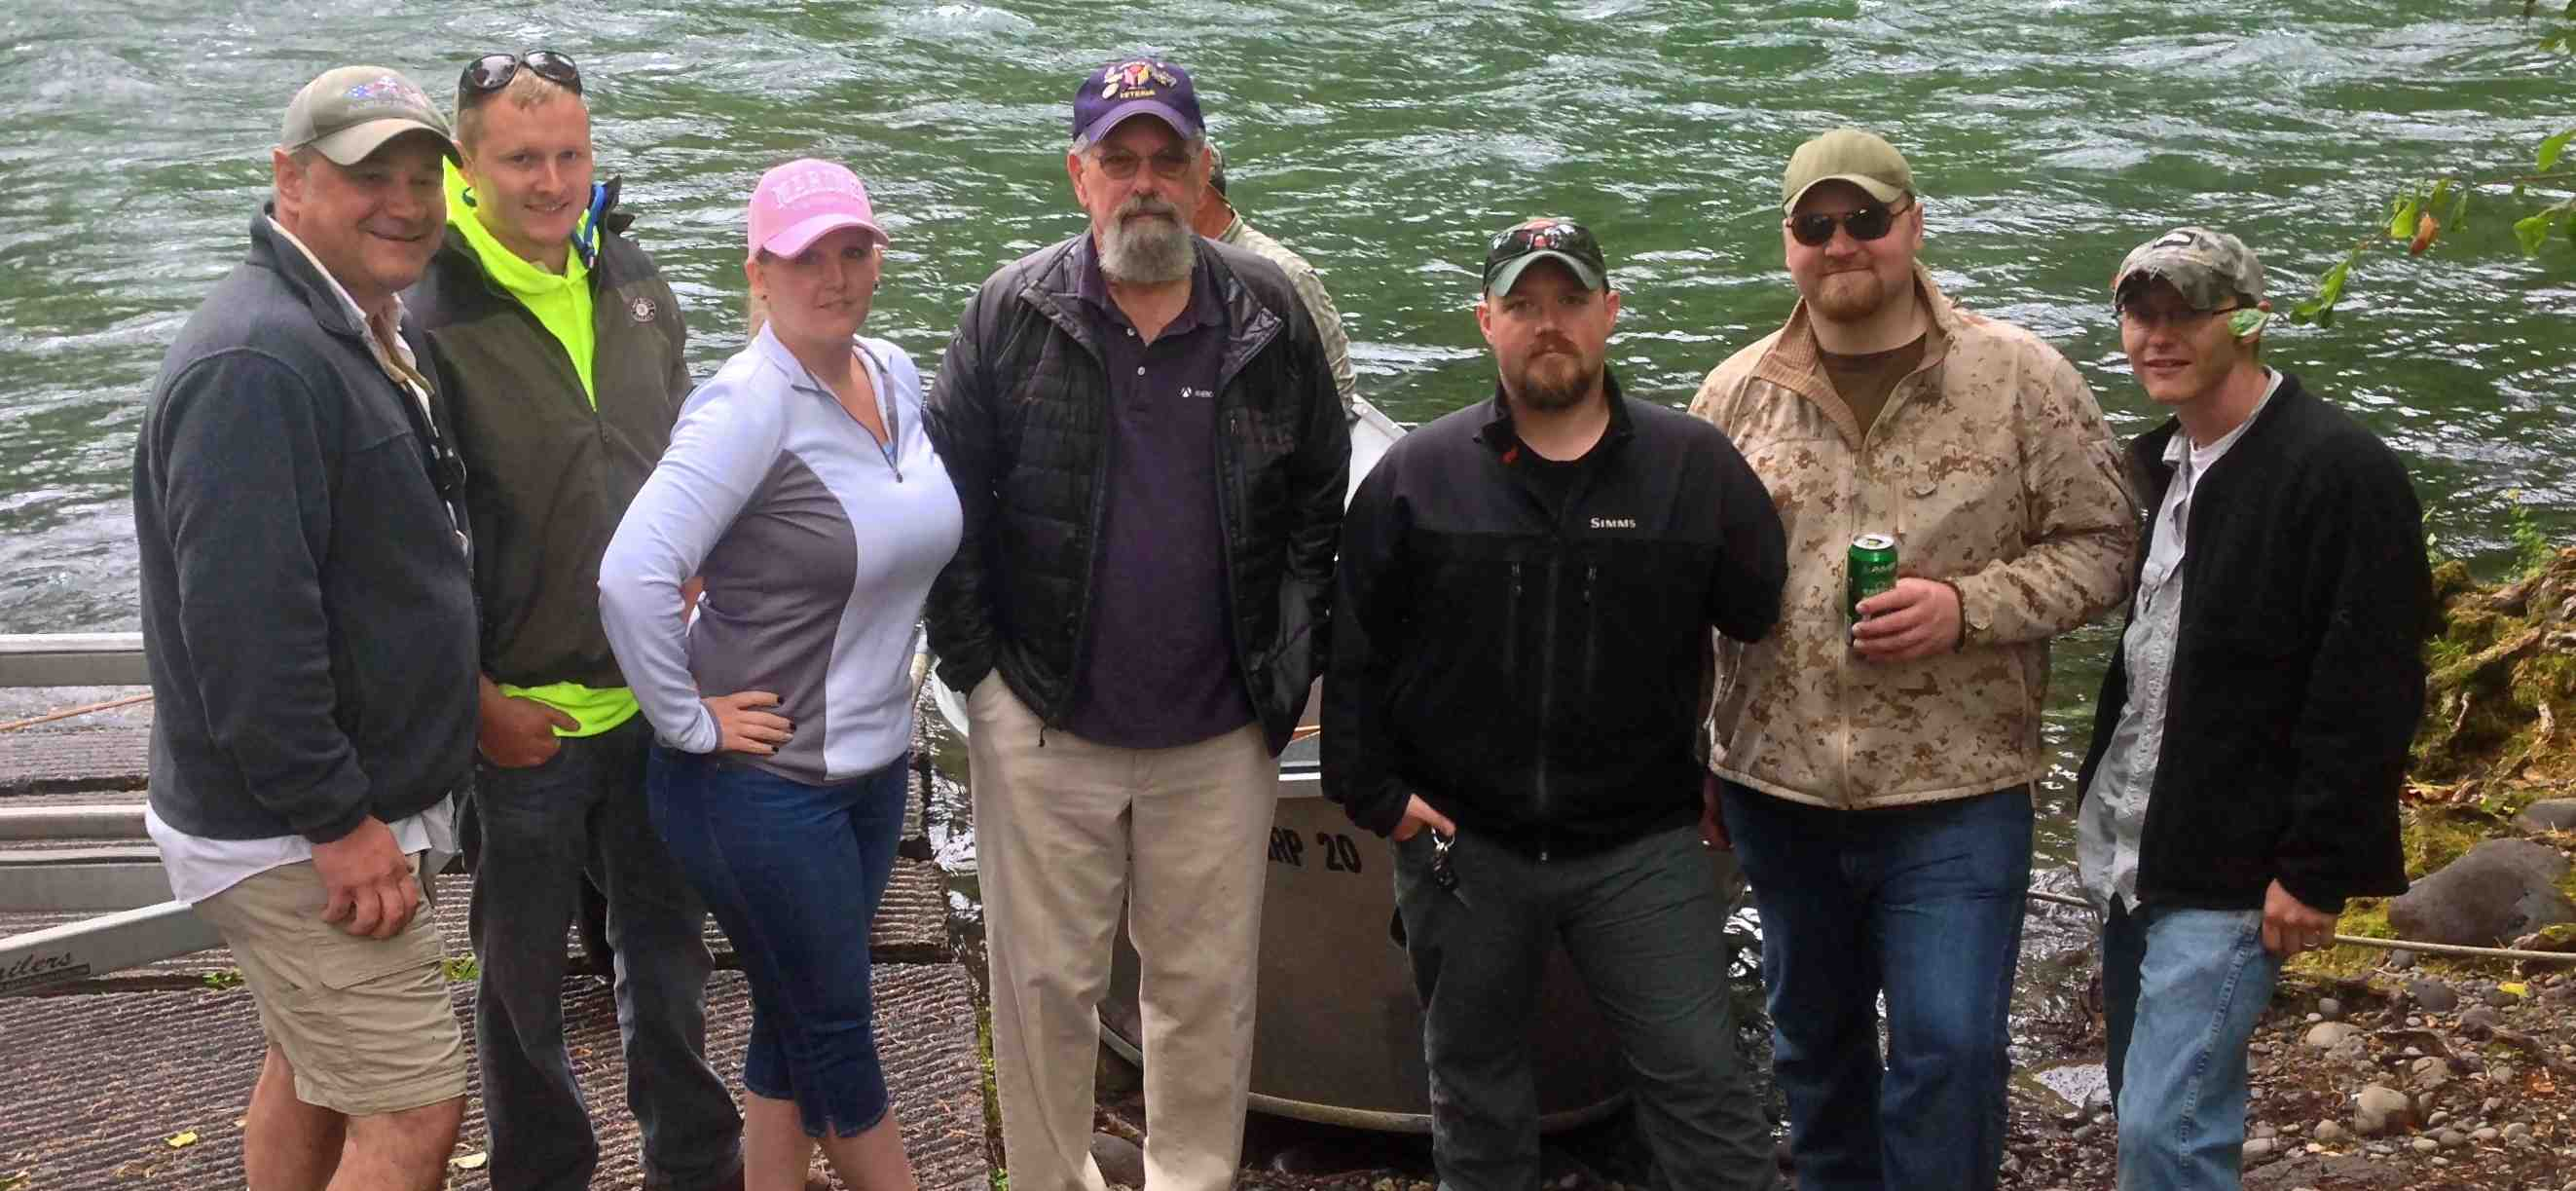 MPulse Supports U.S. Veterans by Sponsoring Fly Fishing Trips for Wounded Soldiers on Oregon's McKenzie River